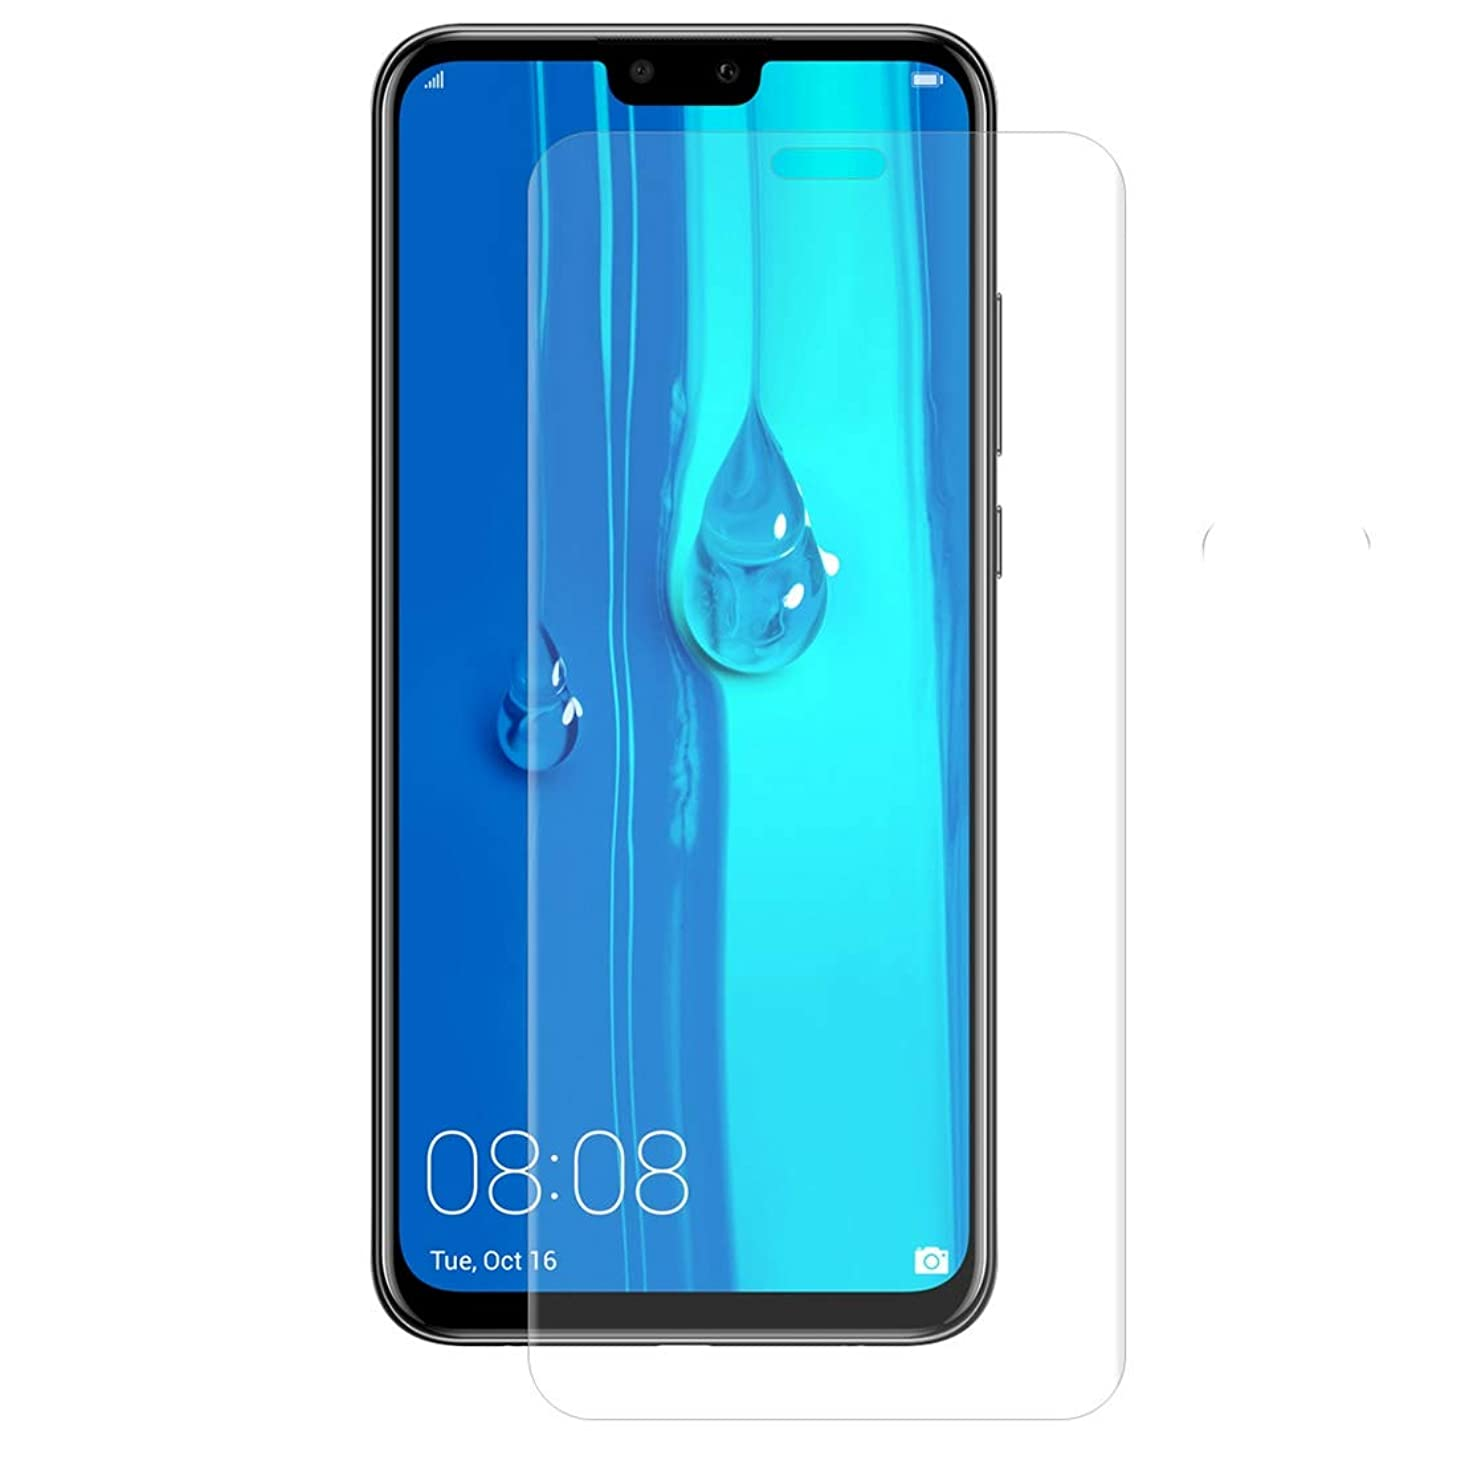 Jiangym Mobile Phone Screen Protector Hat-Prince 3D Full Screen Protector Explosion-Proof Hydrogel Film for Huawei Y9 (2019) Screen Protector